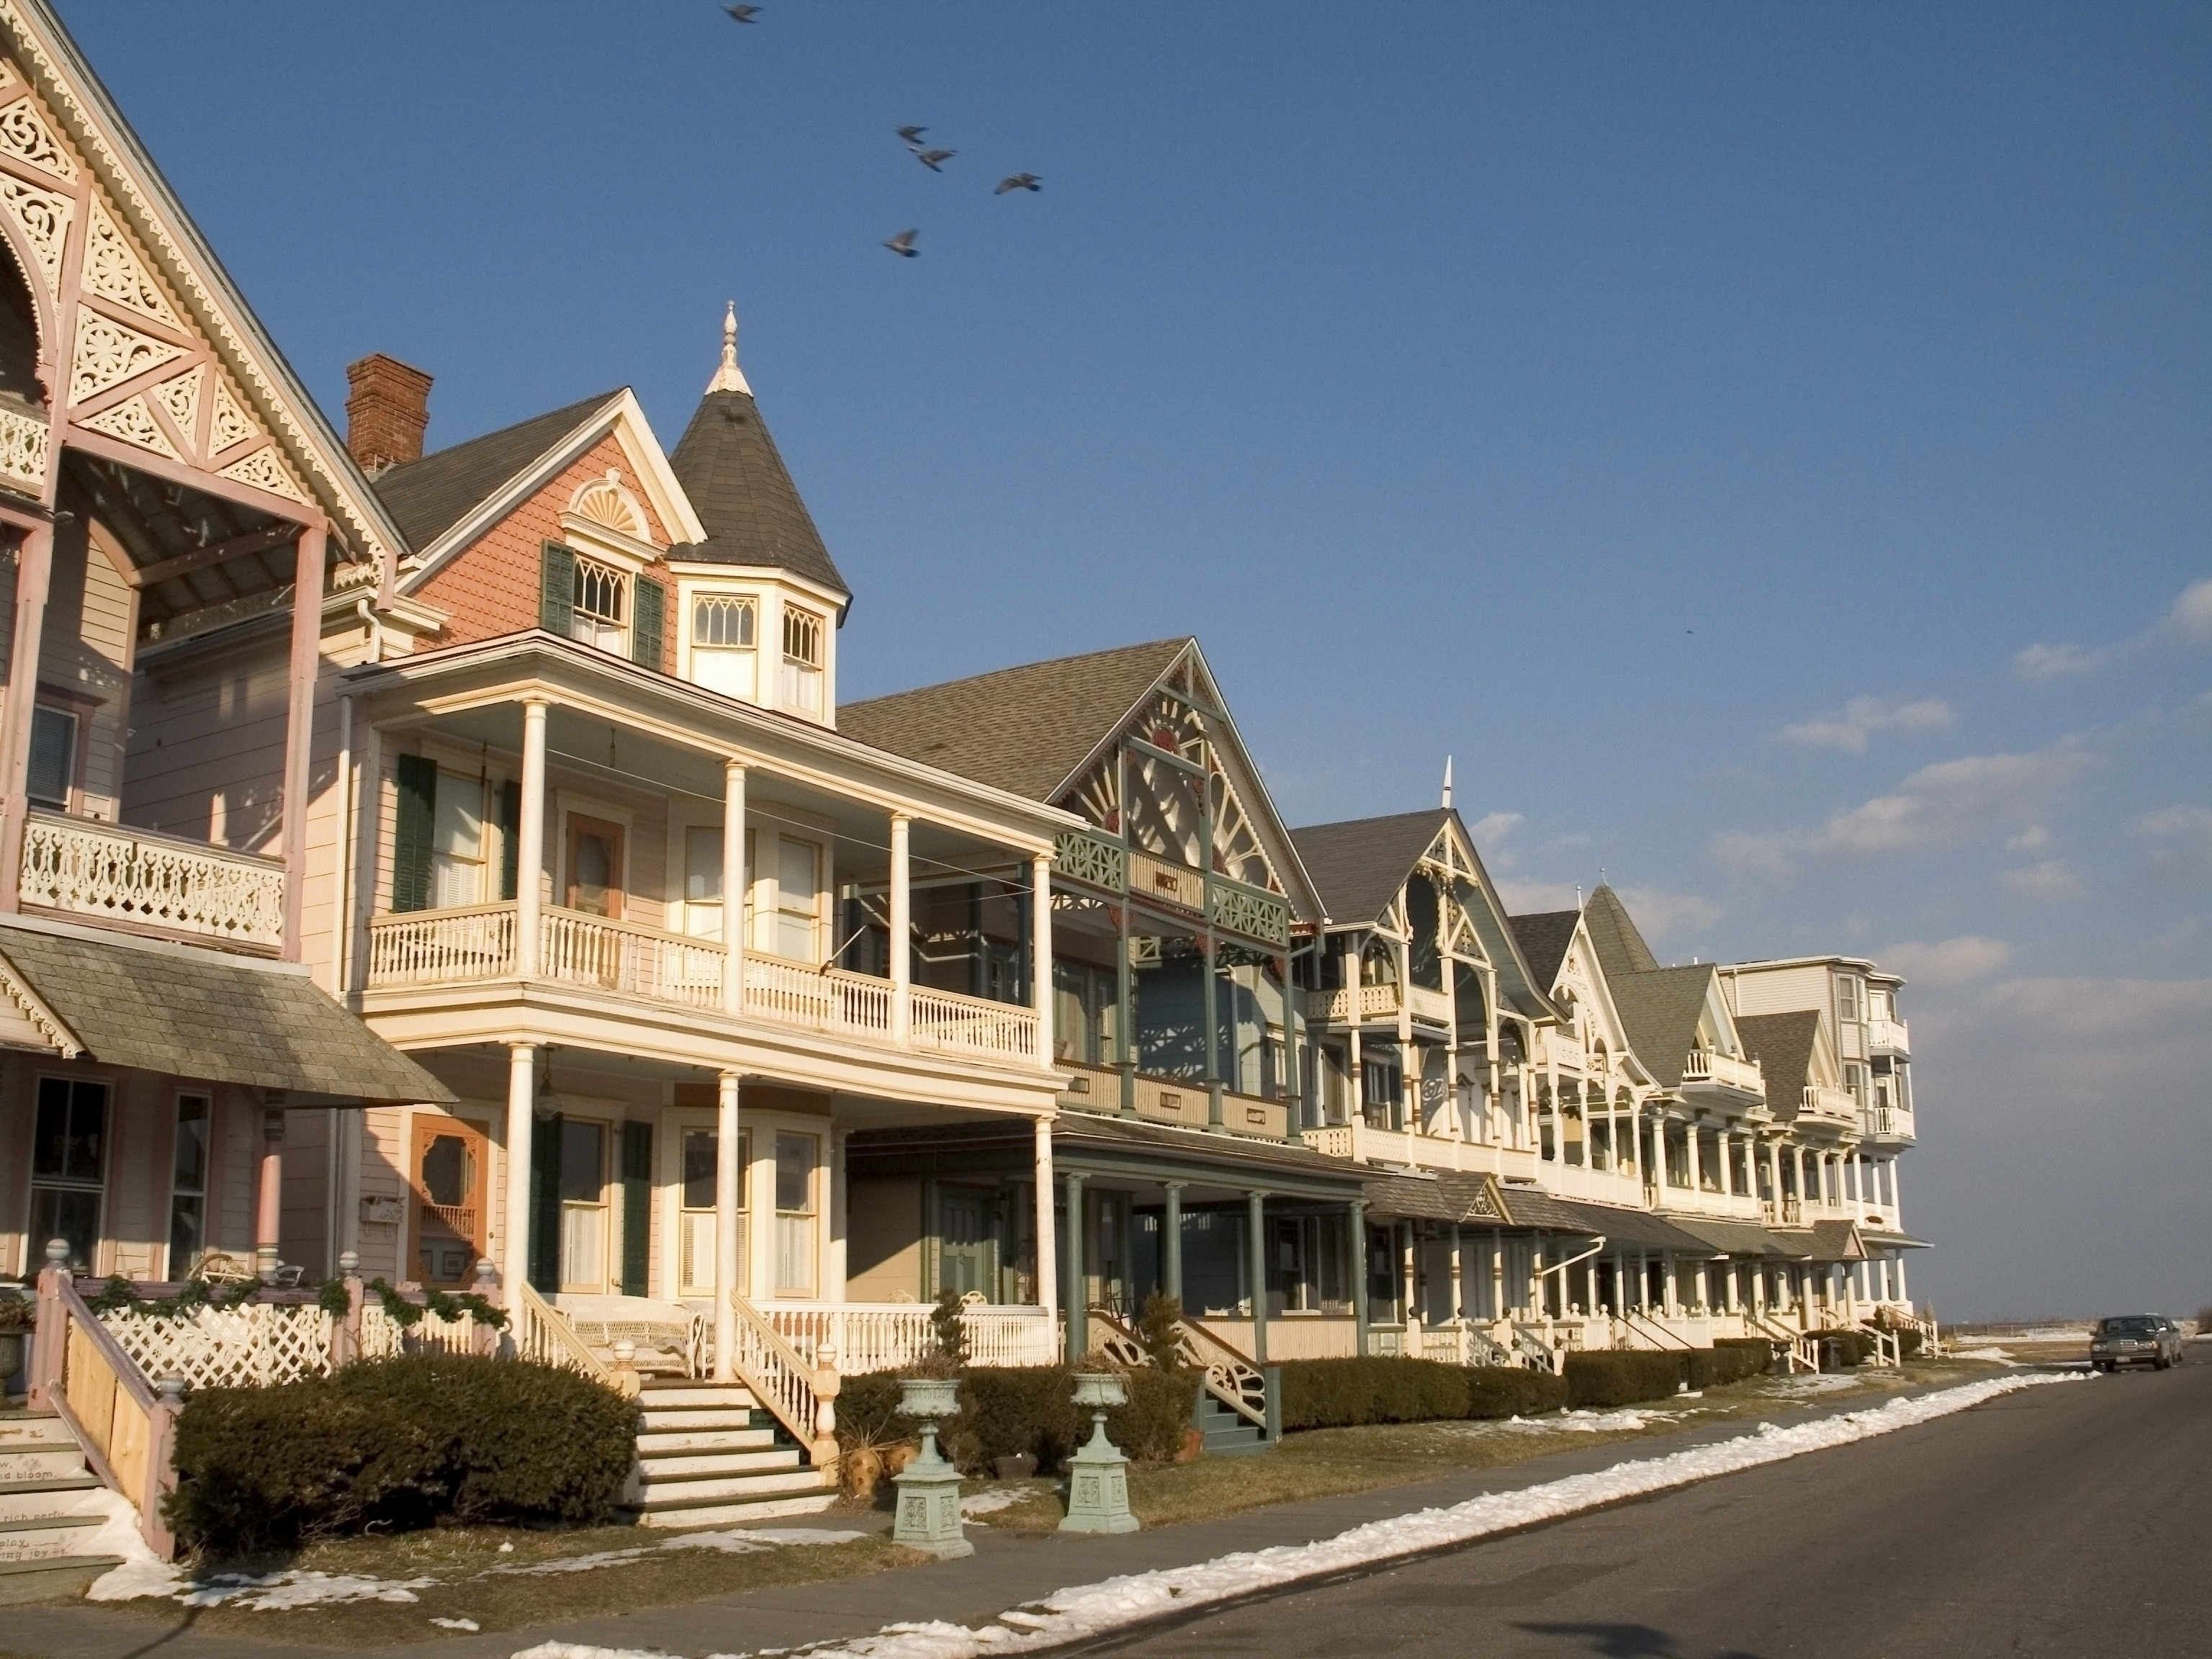 Ocean Grove, New Jersey, United States of America